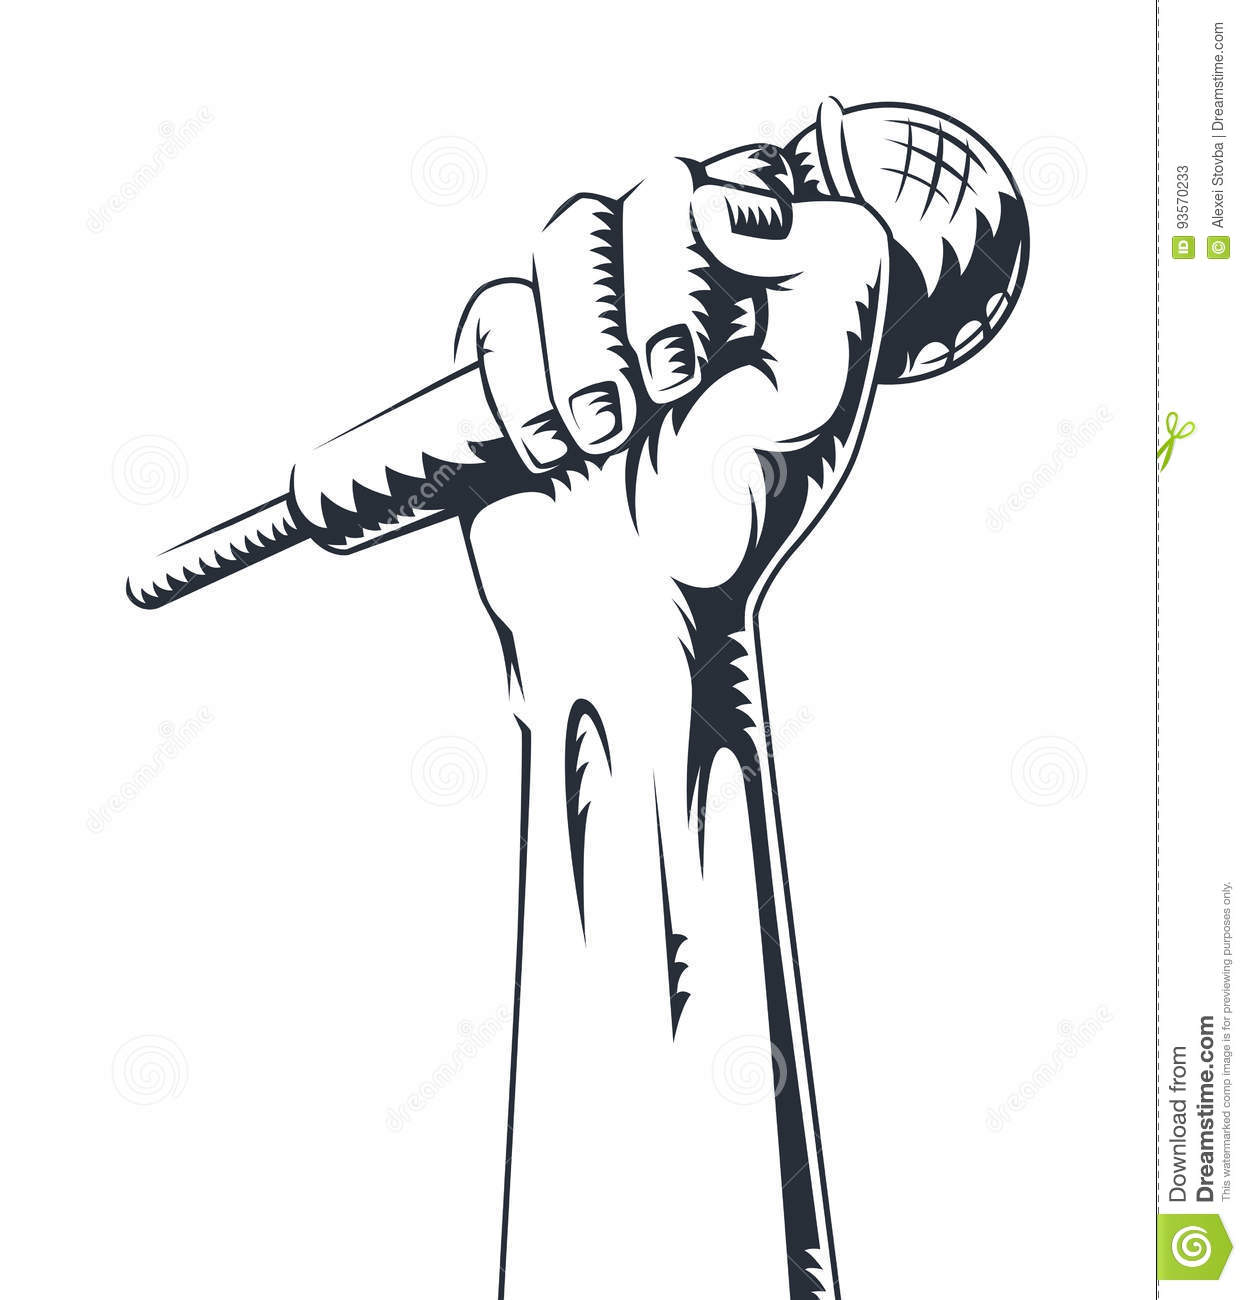 Hand Holding A Microphone In A Fist Vector Illustration